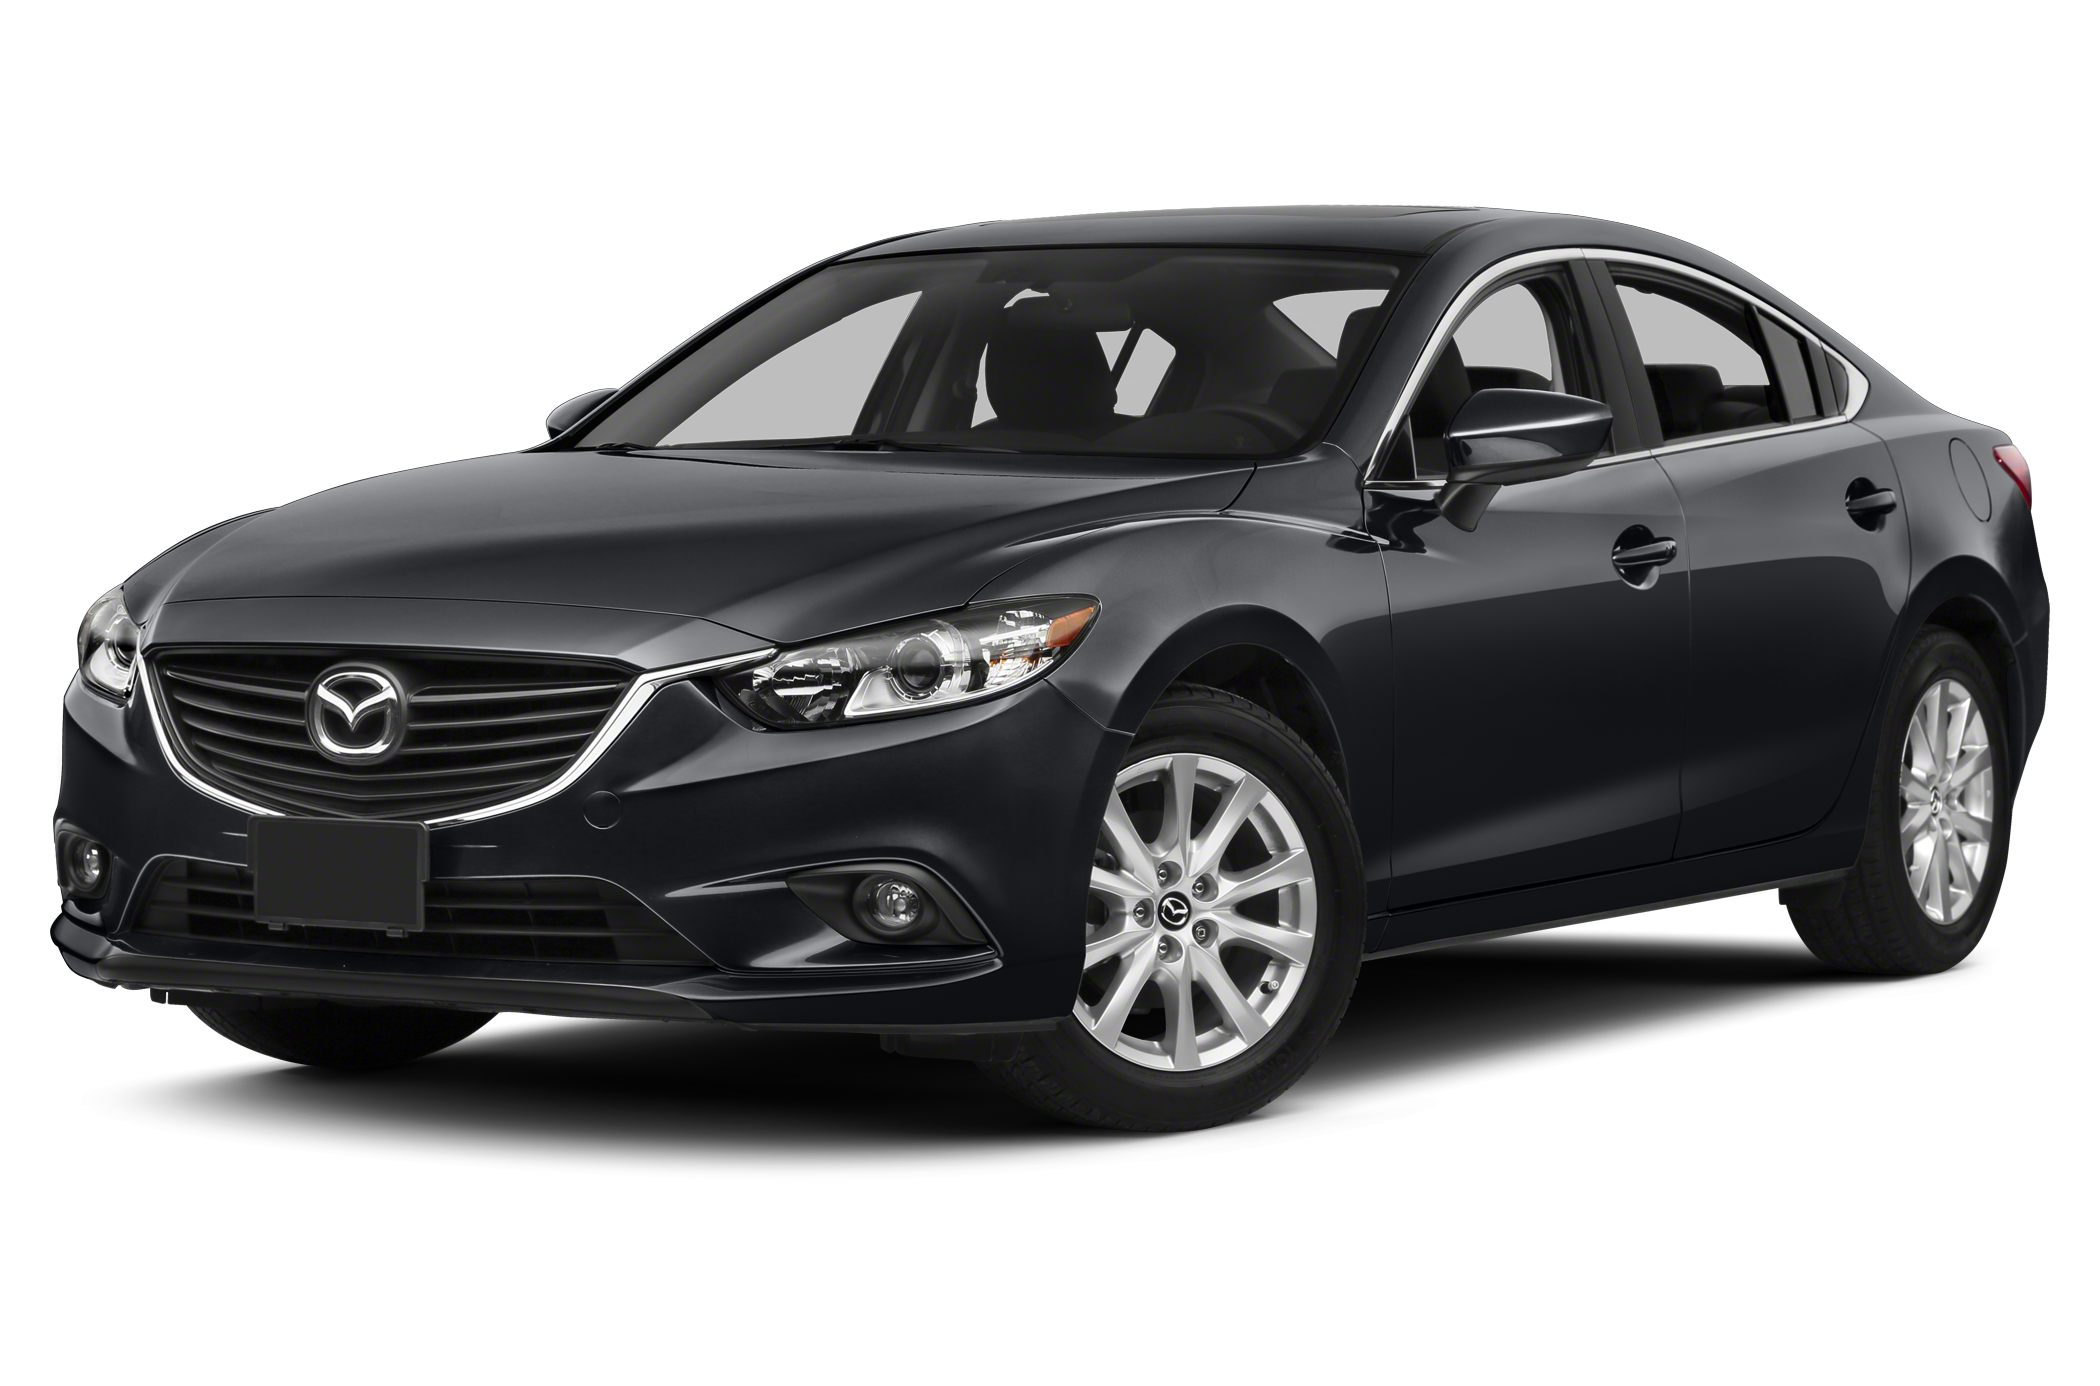 2014 Mazda Mazda6 I Sport Sedan for sale in Valdosta for $24,160 with 2 miles